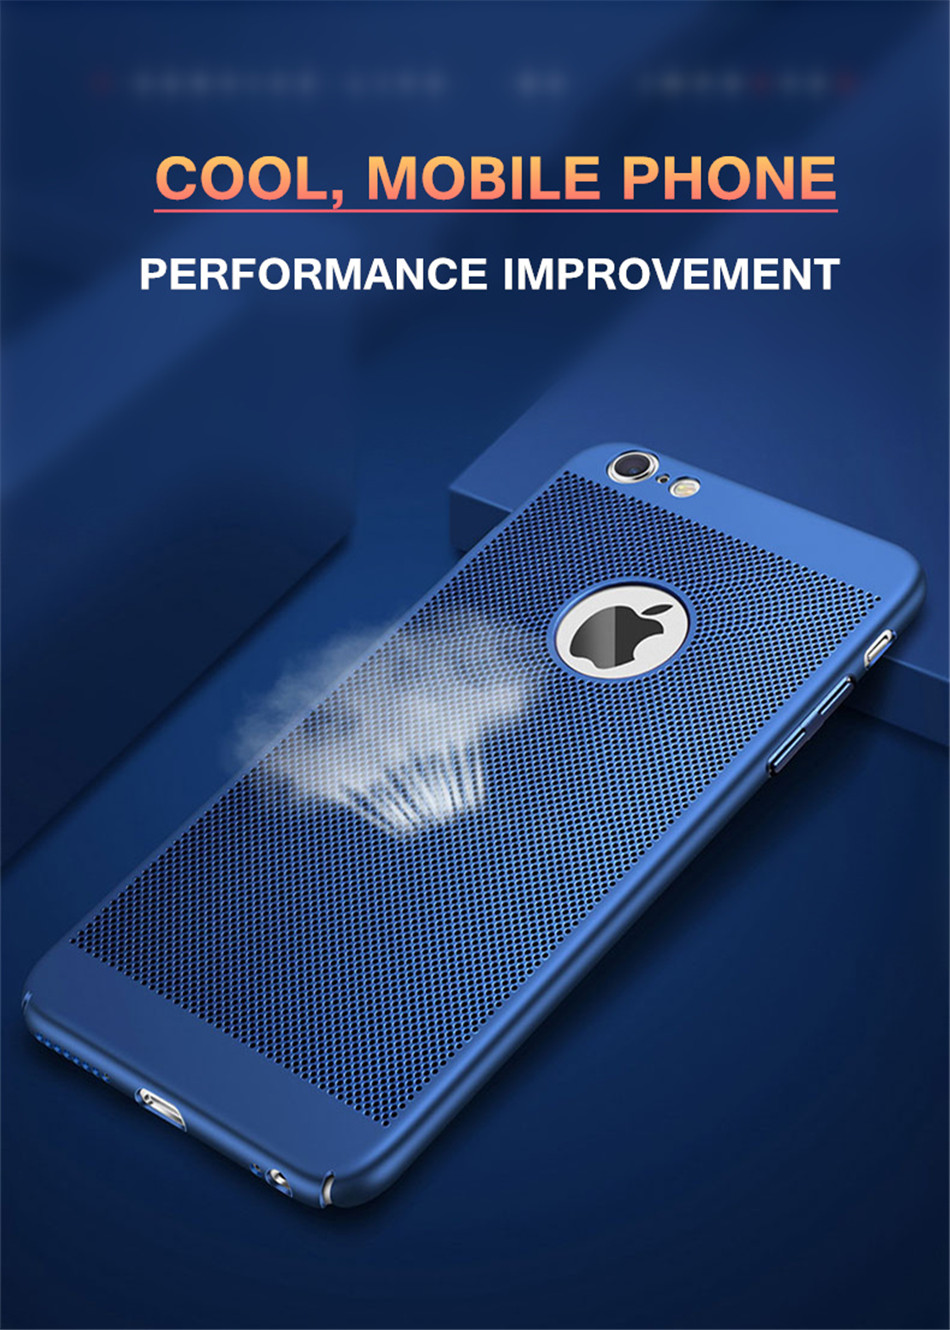 Heat dissipation iPhone Case - Hard Back PC Protect Shell 3